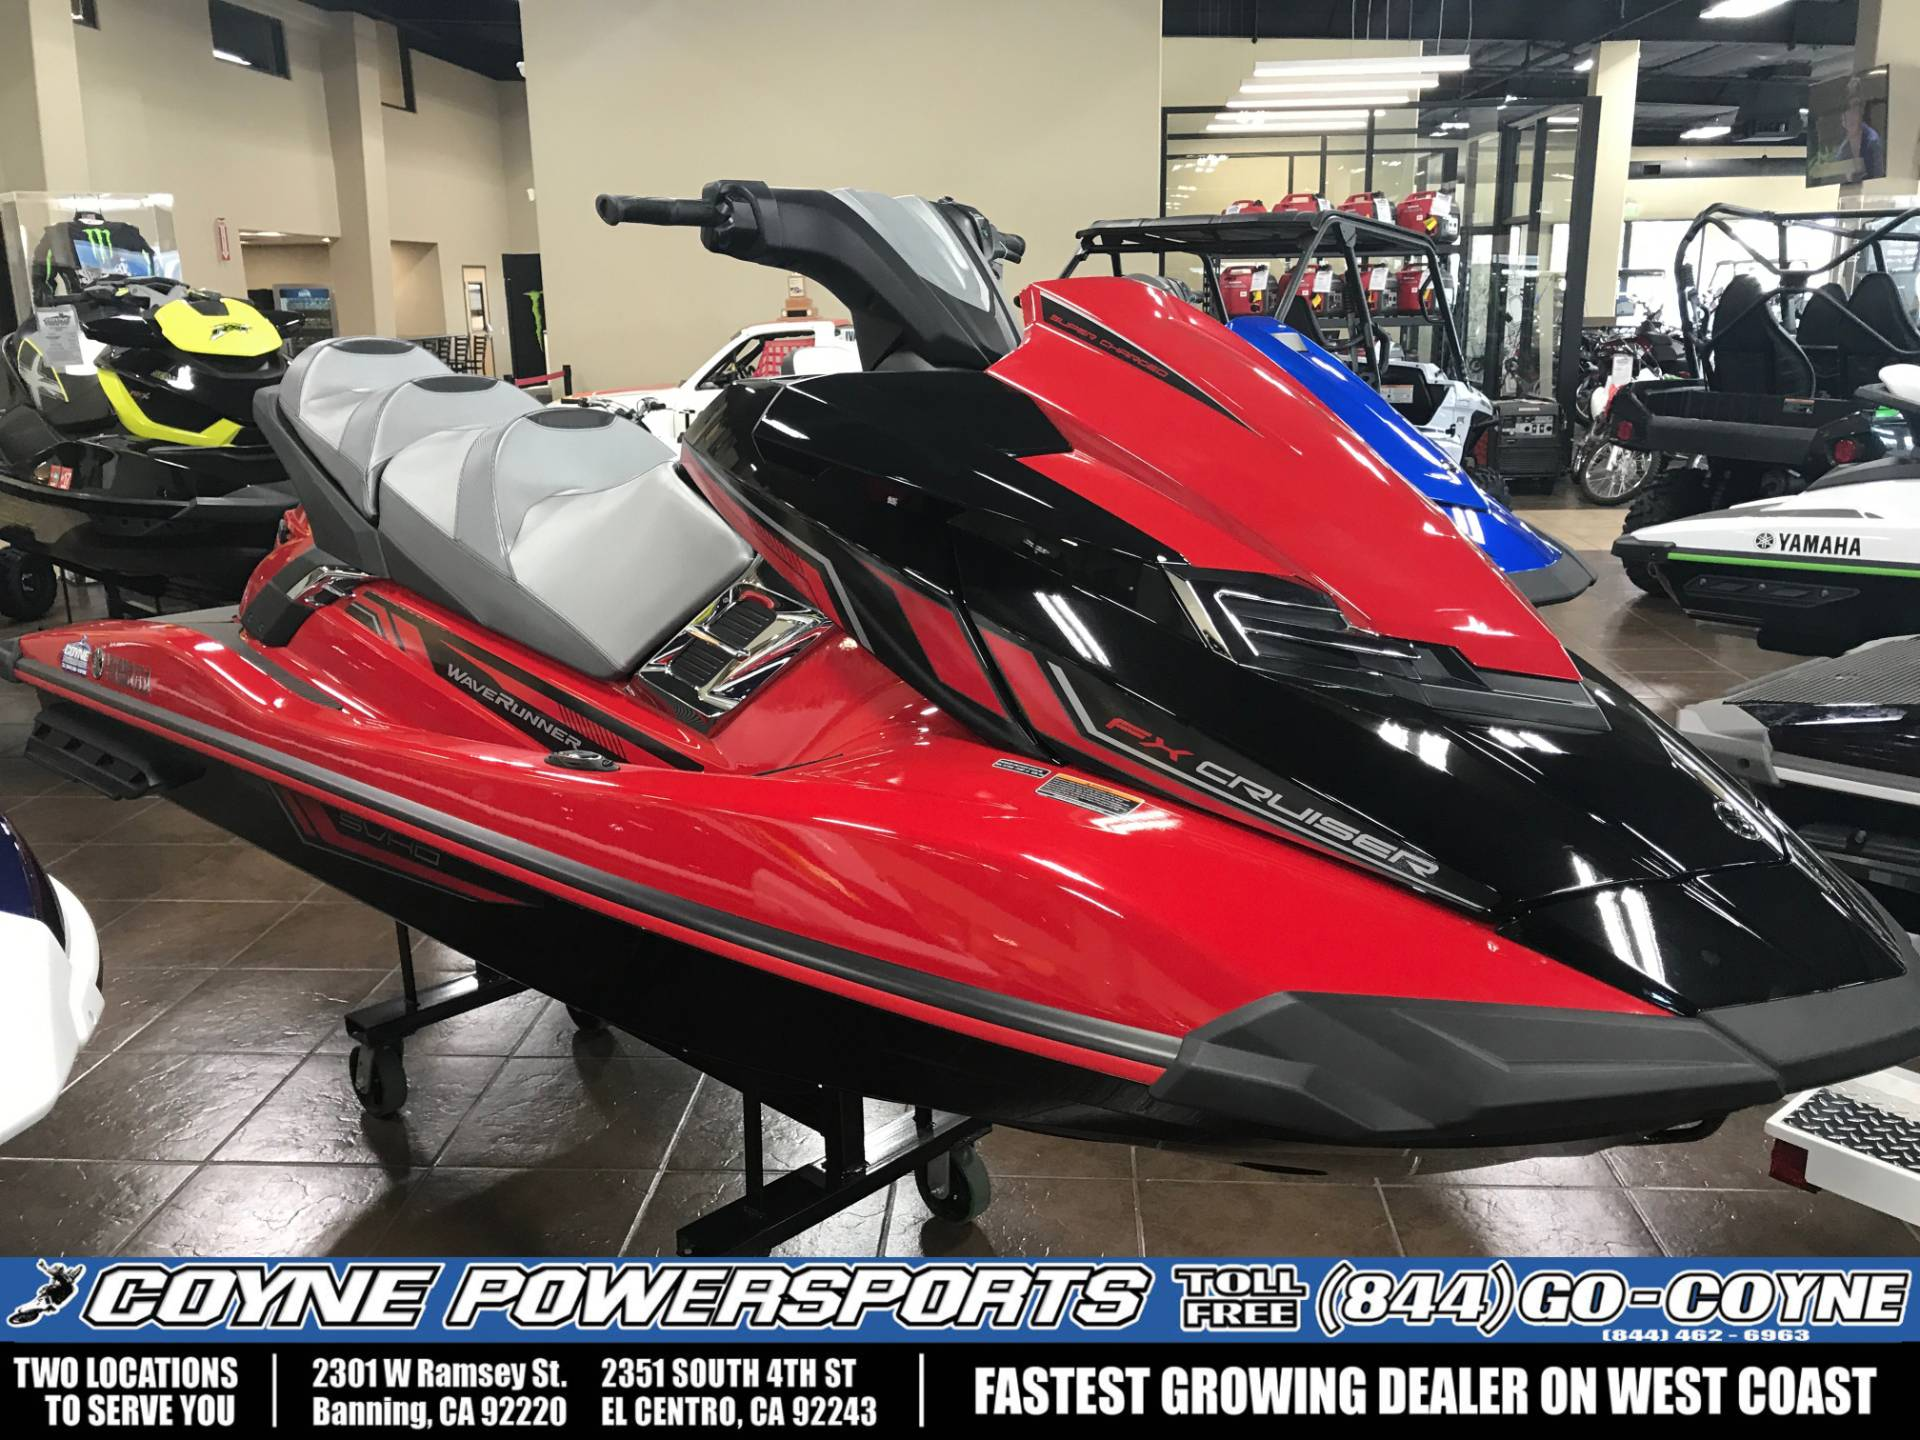 2017 Yamaha FX Cruiser SVHO for sale 23846